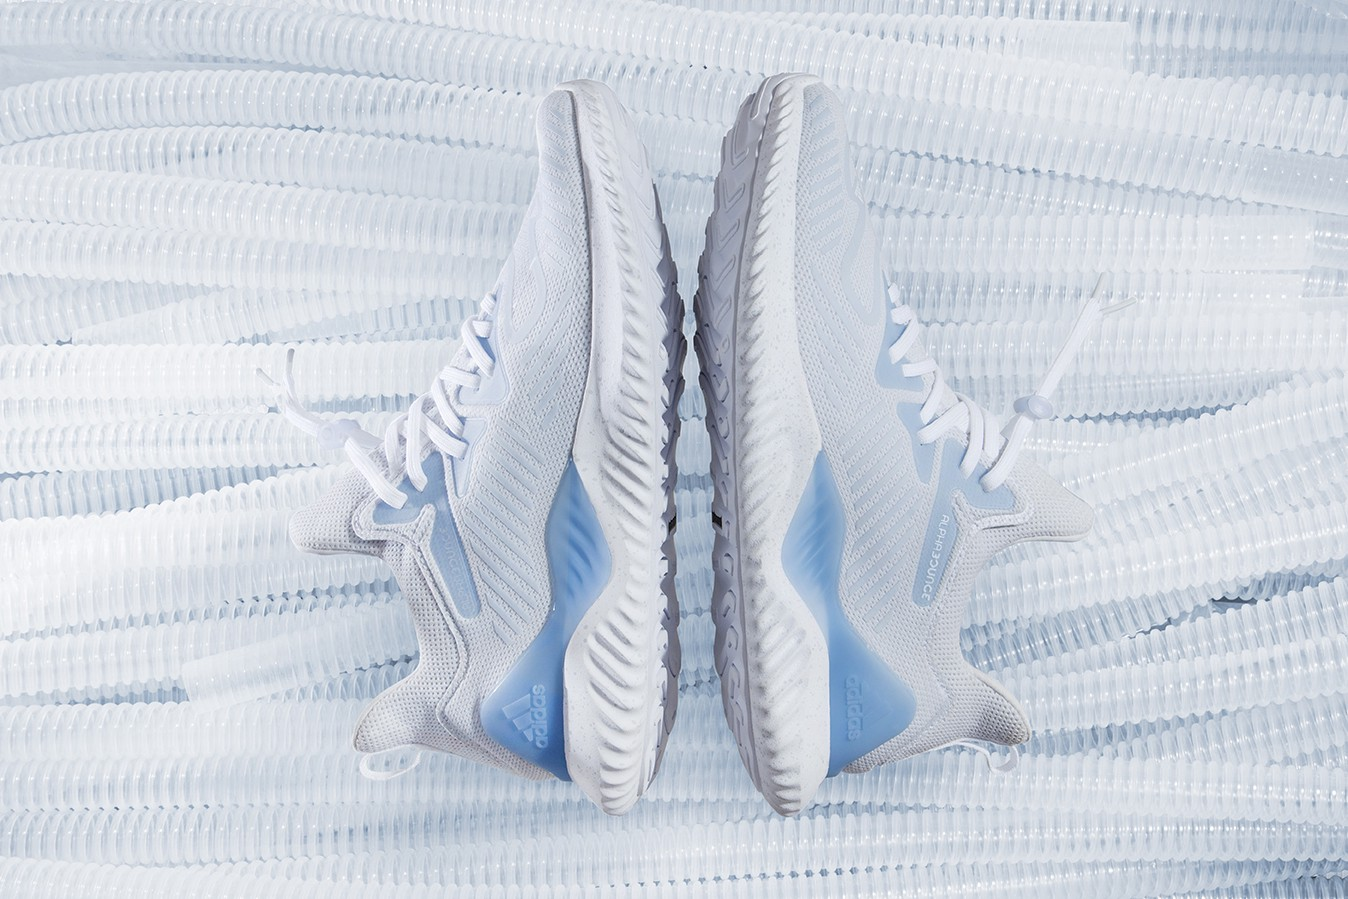 save off 84451 97efa adidas unveils the Alphabounce Beyond Extra Butter colorway exclusive, a  white and aero blue silhouette inspired by VO2 Max training.